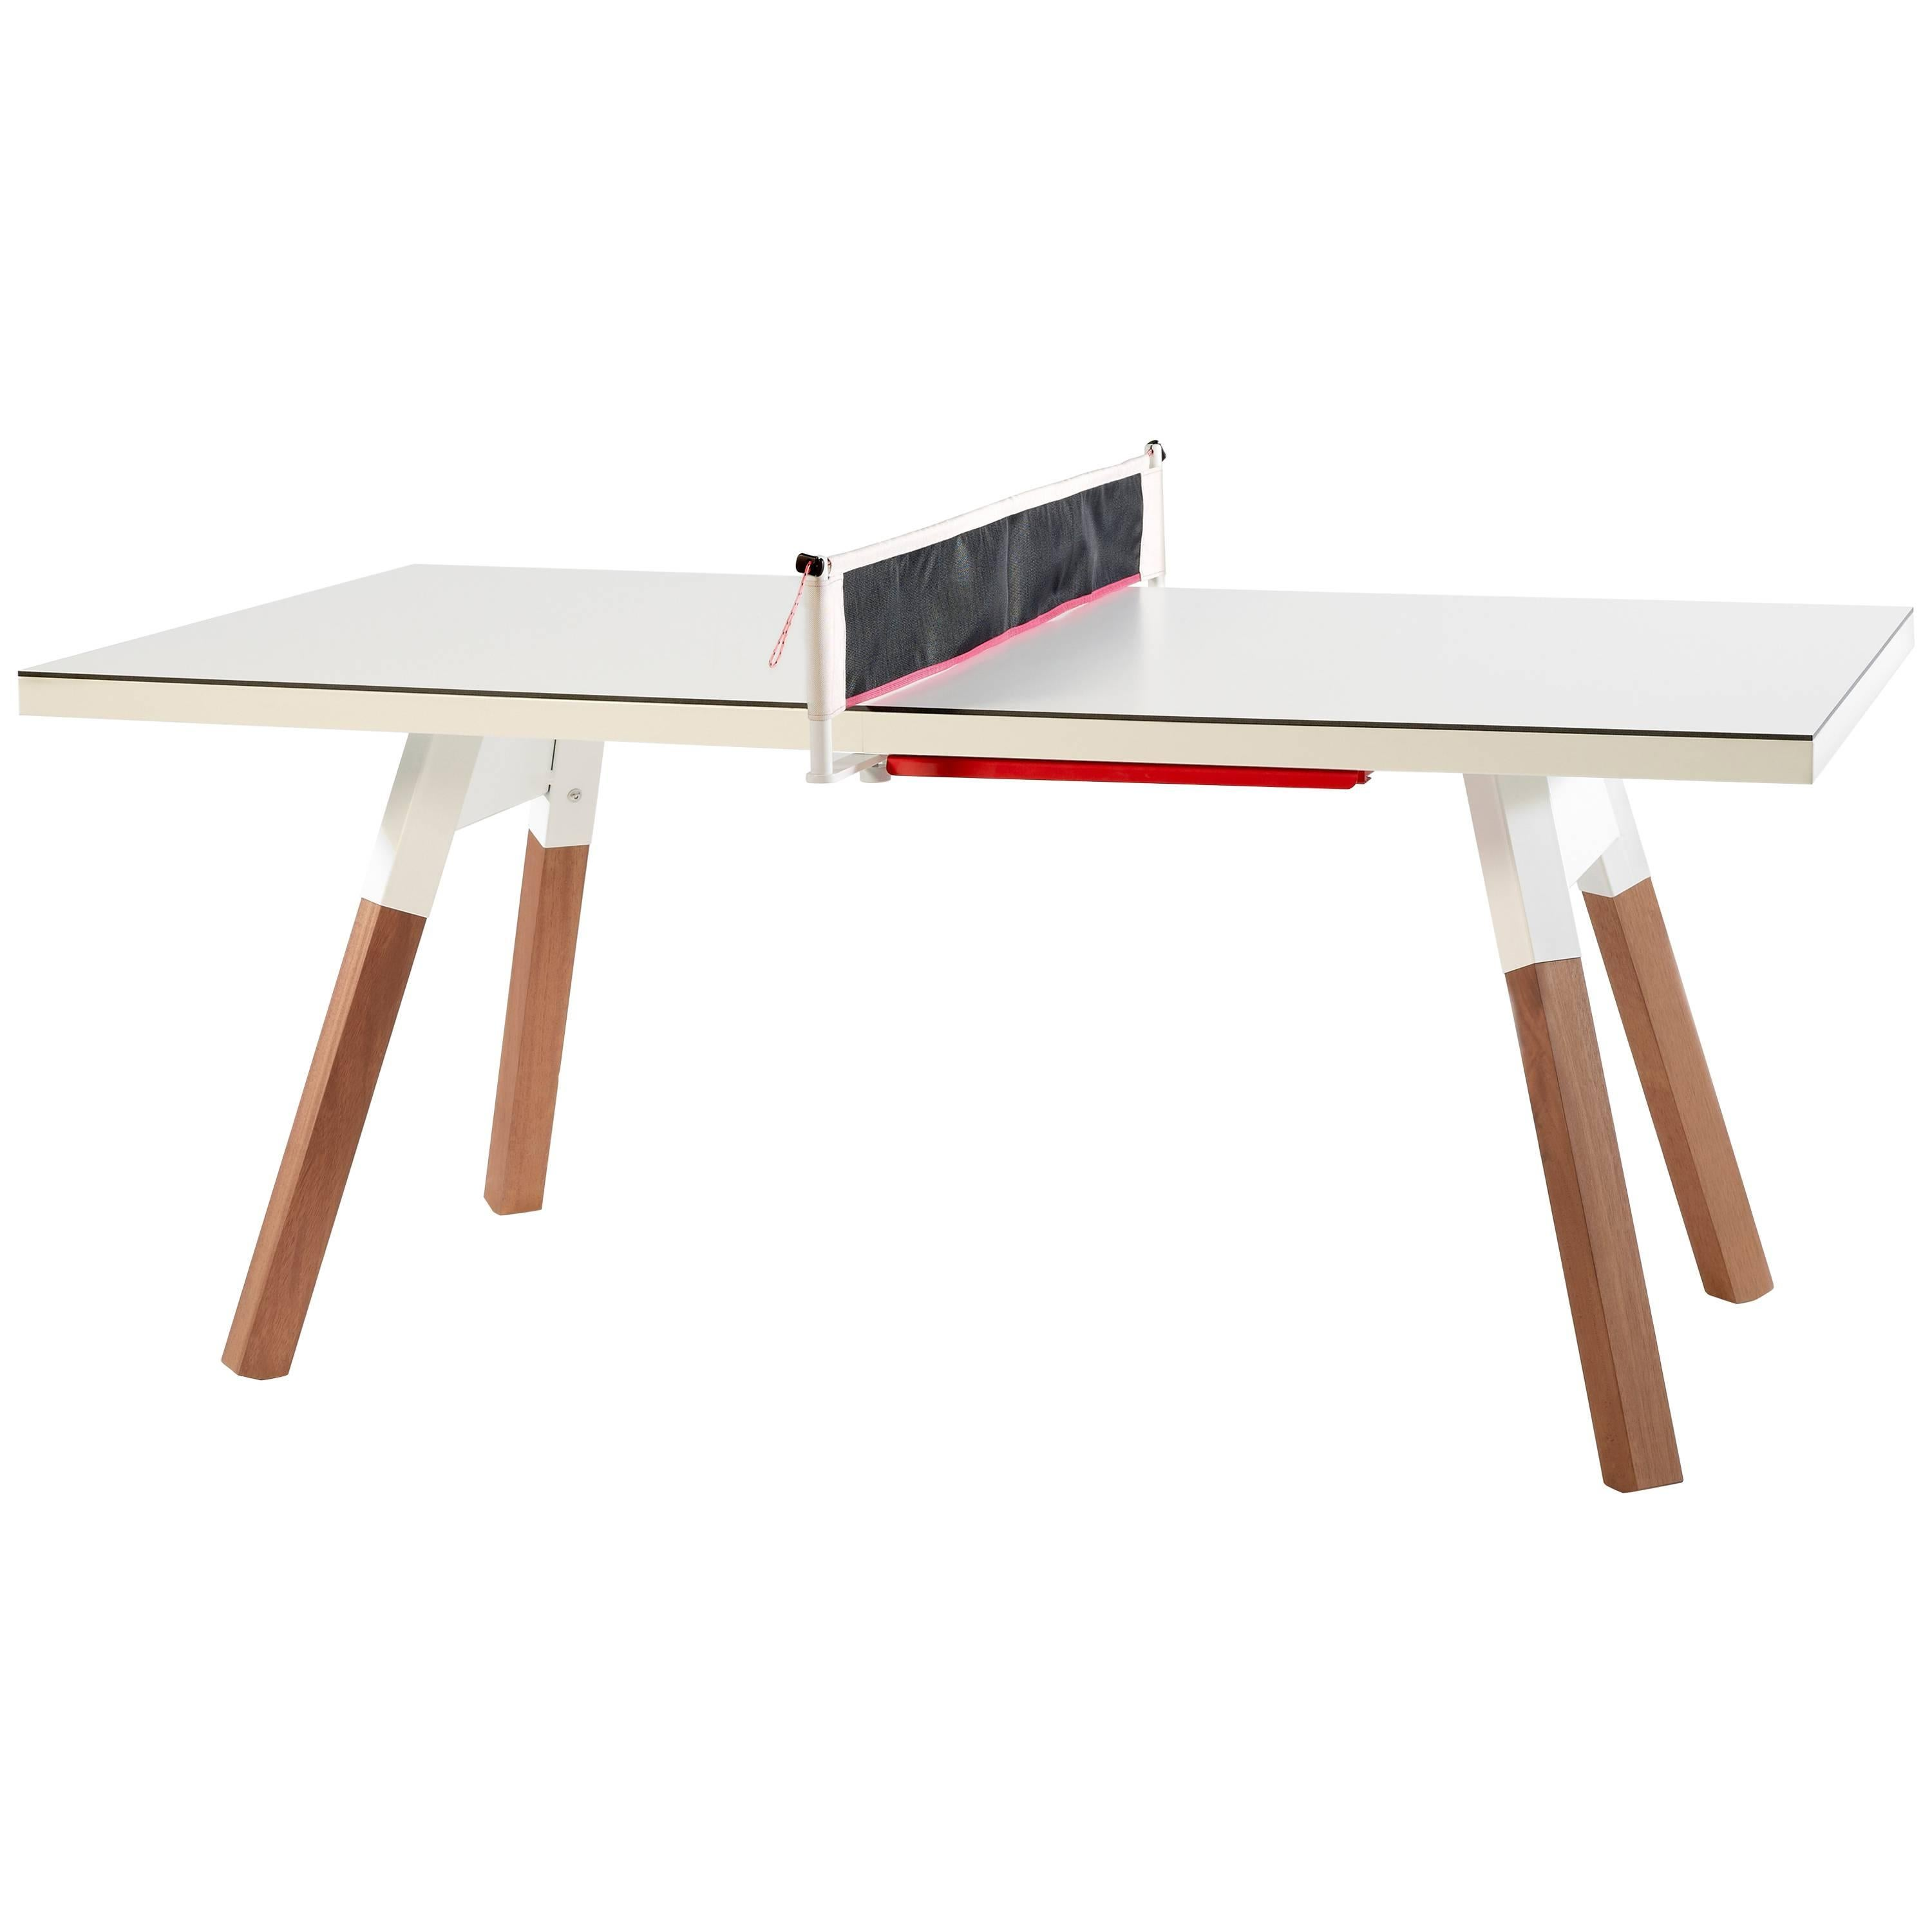 You & Me HPL Top Ping Pong Table 180 in White by RS Barcelona